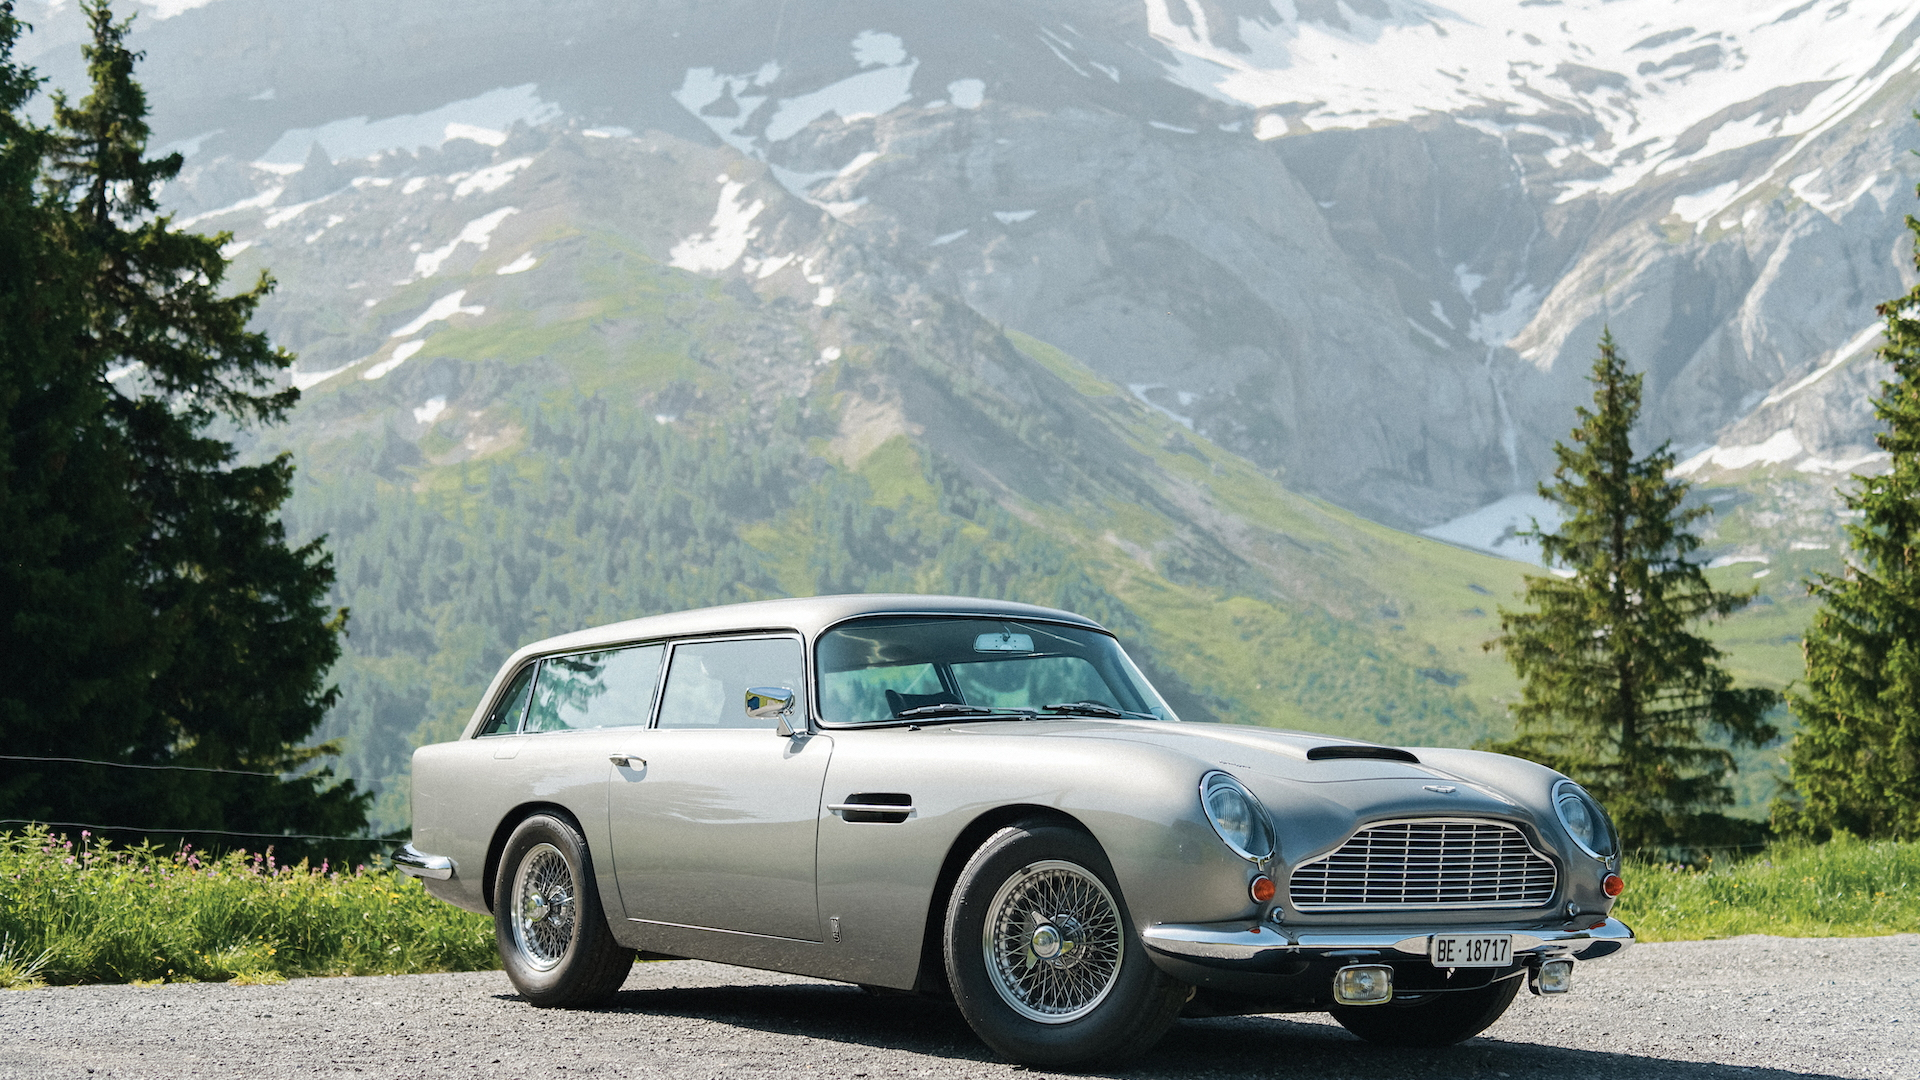 1965 Aston Martin DB5 Shooting Brake Photo: RM Sotheby's